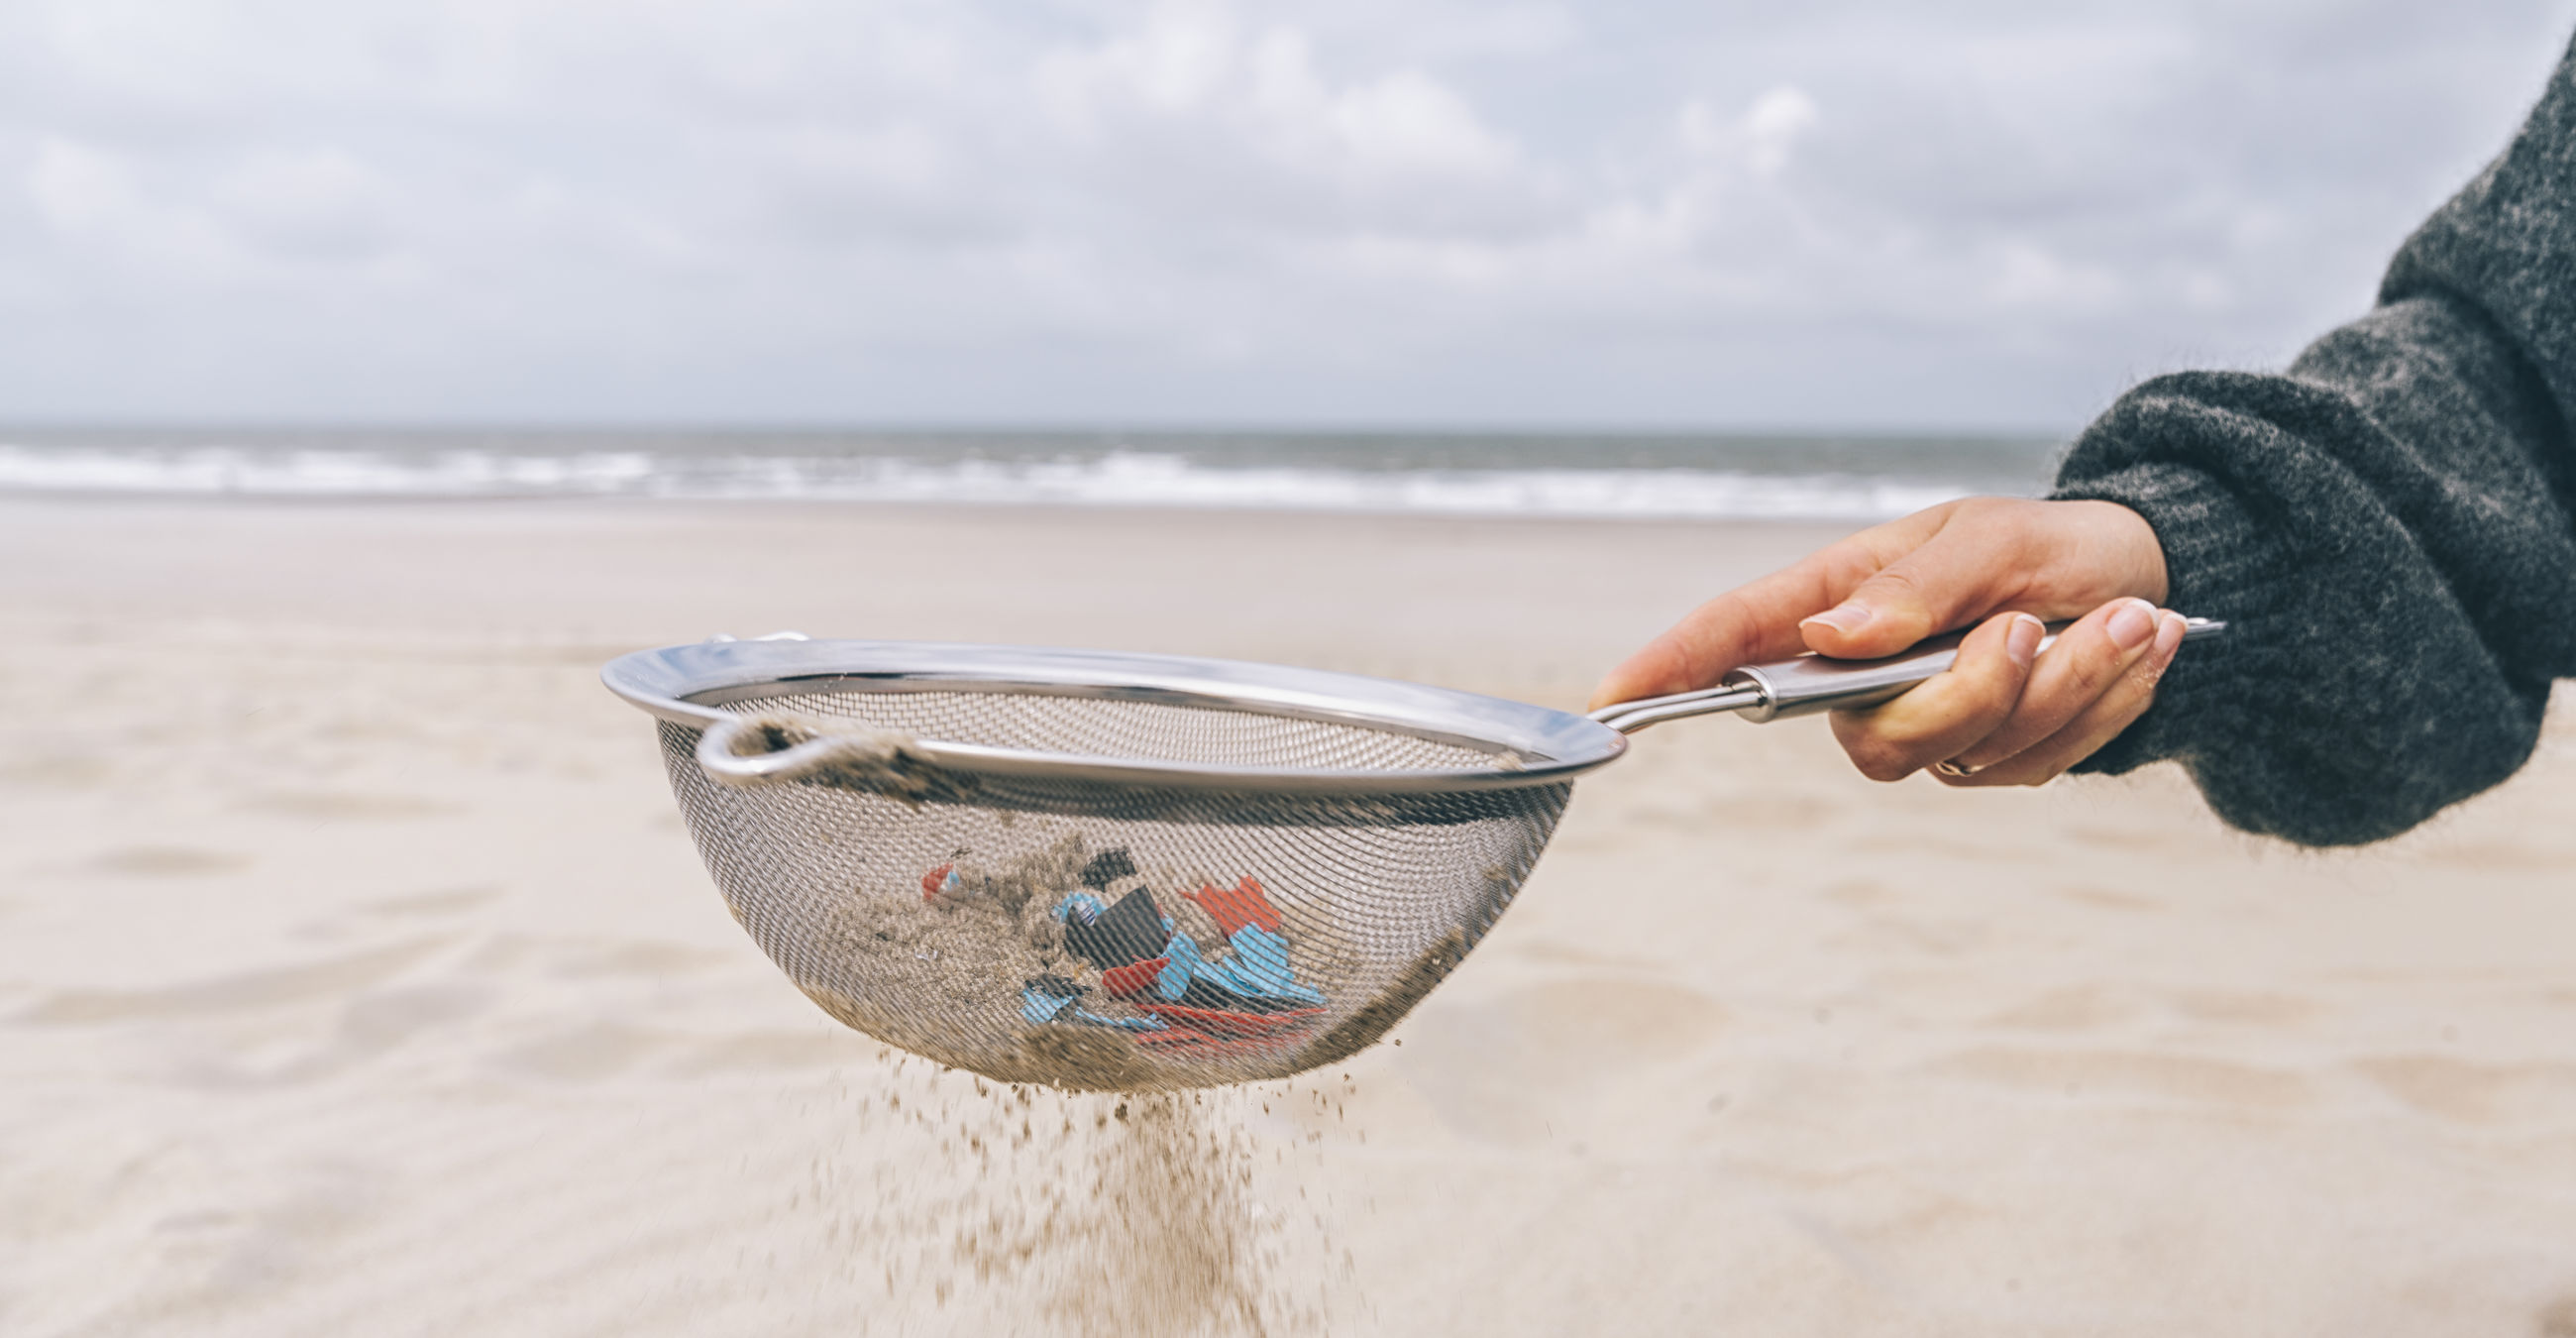 Cropped hand of woman holding colander on beach